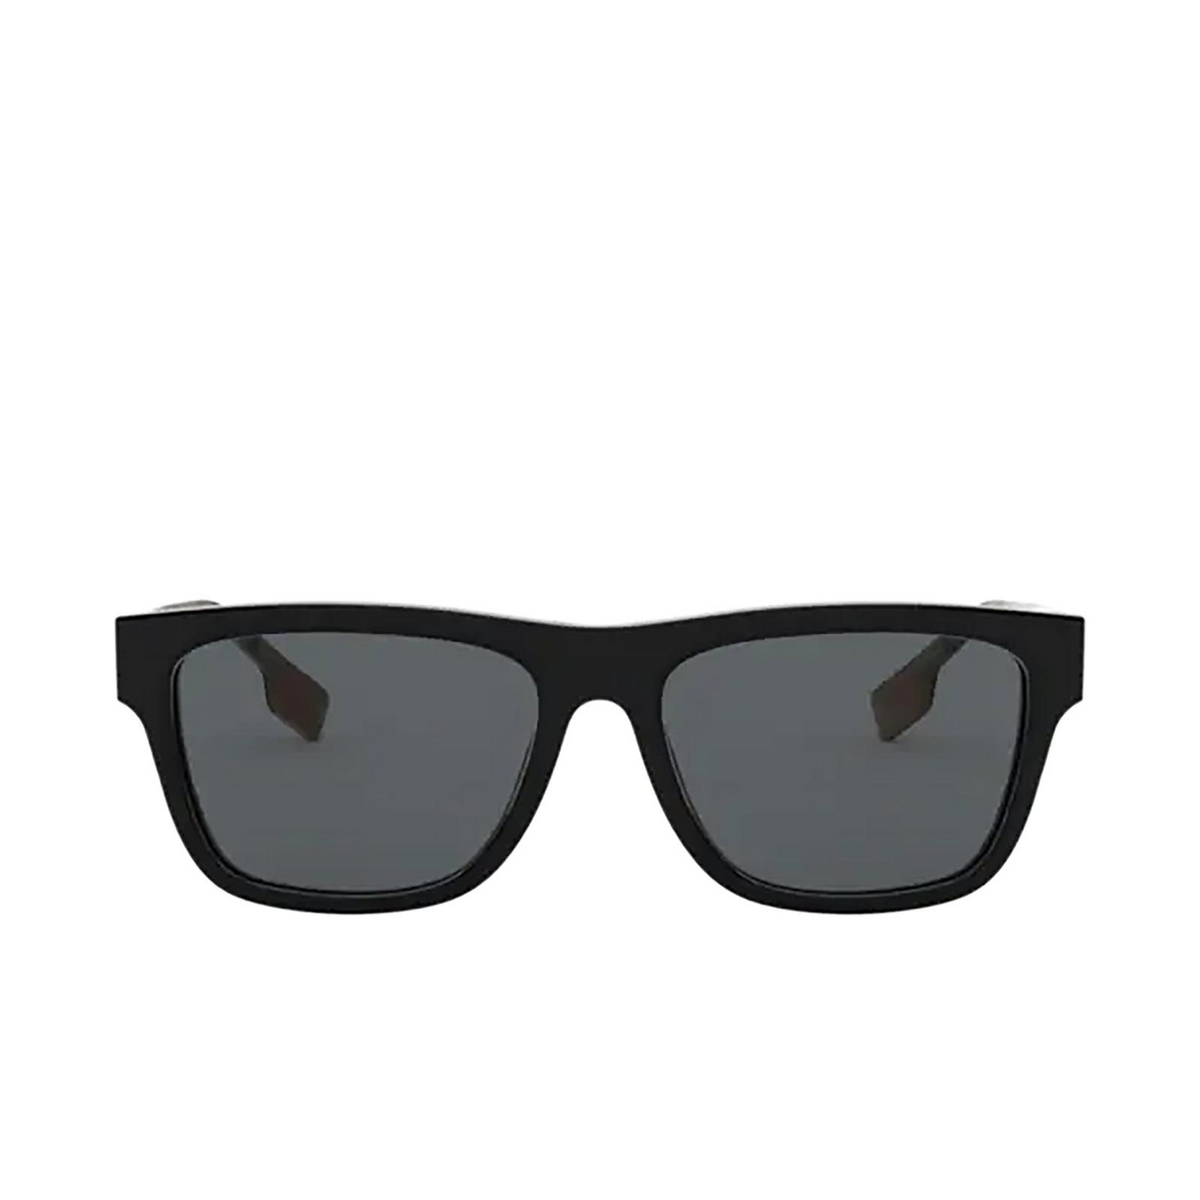 Burberry® Square Sunglasses: BE4293 color Black 377381 - front view.